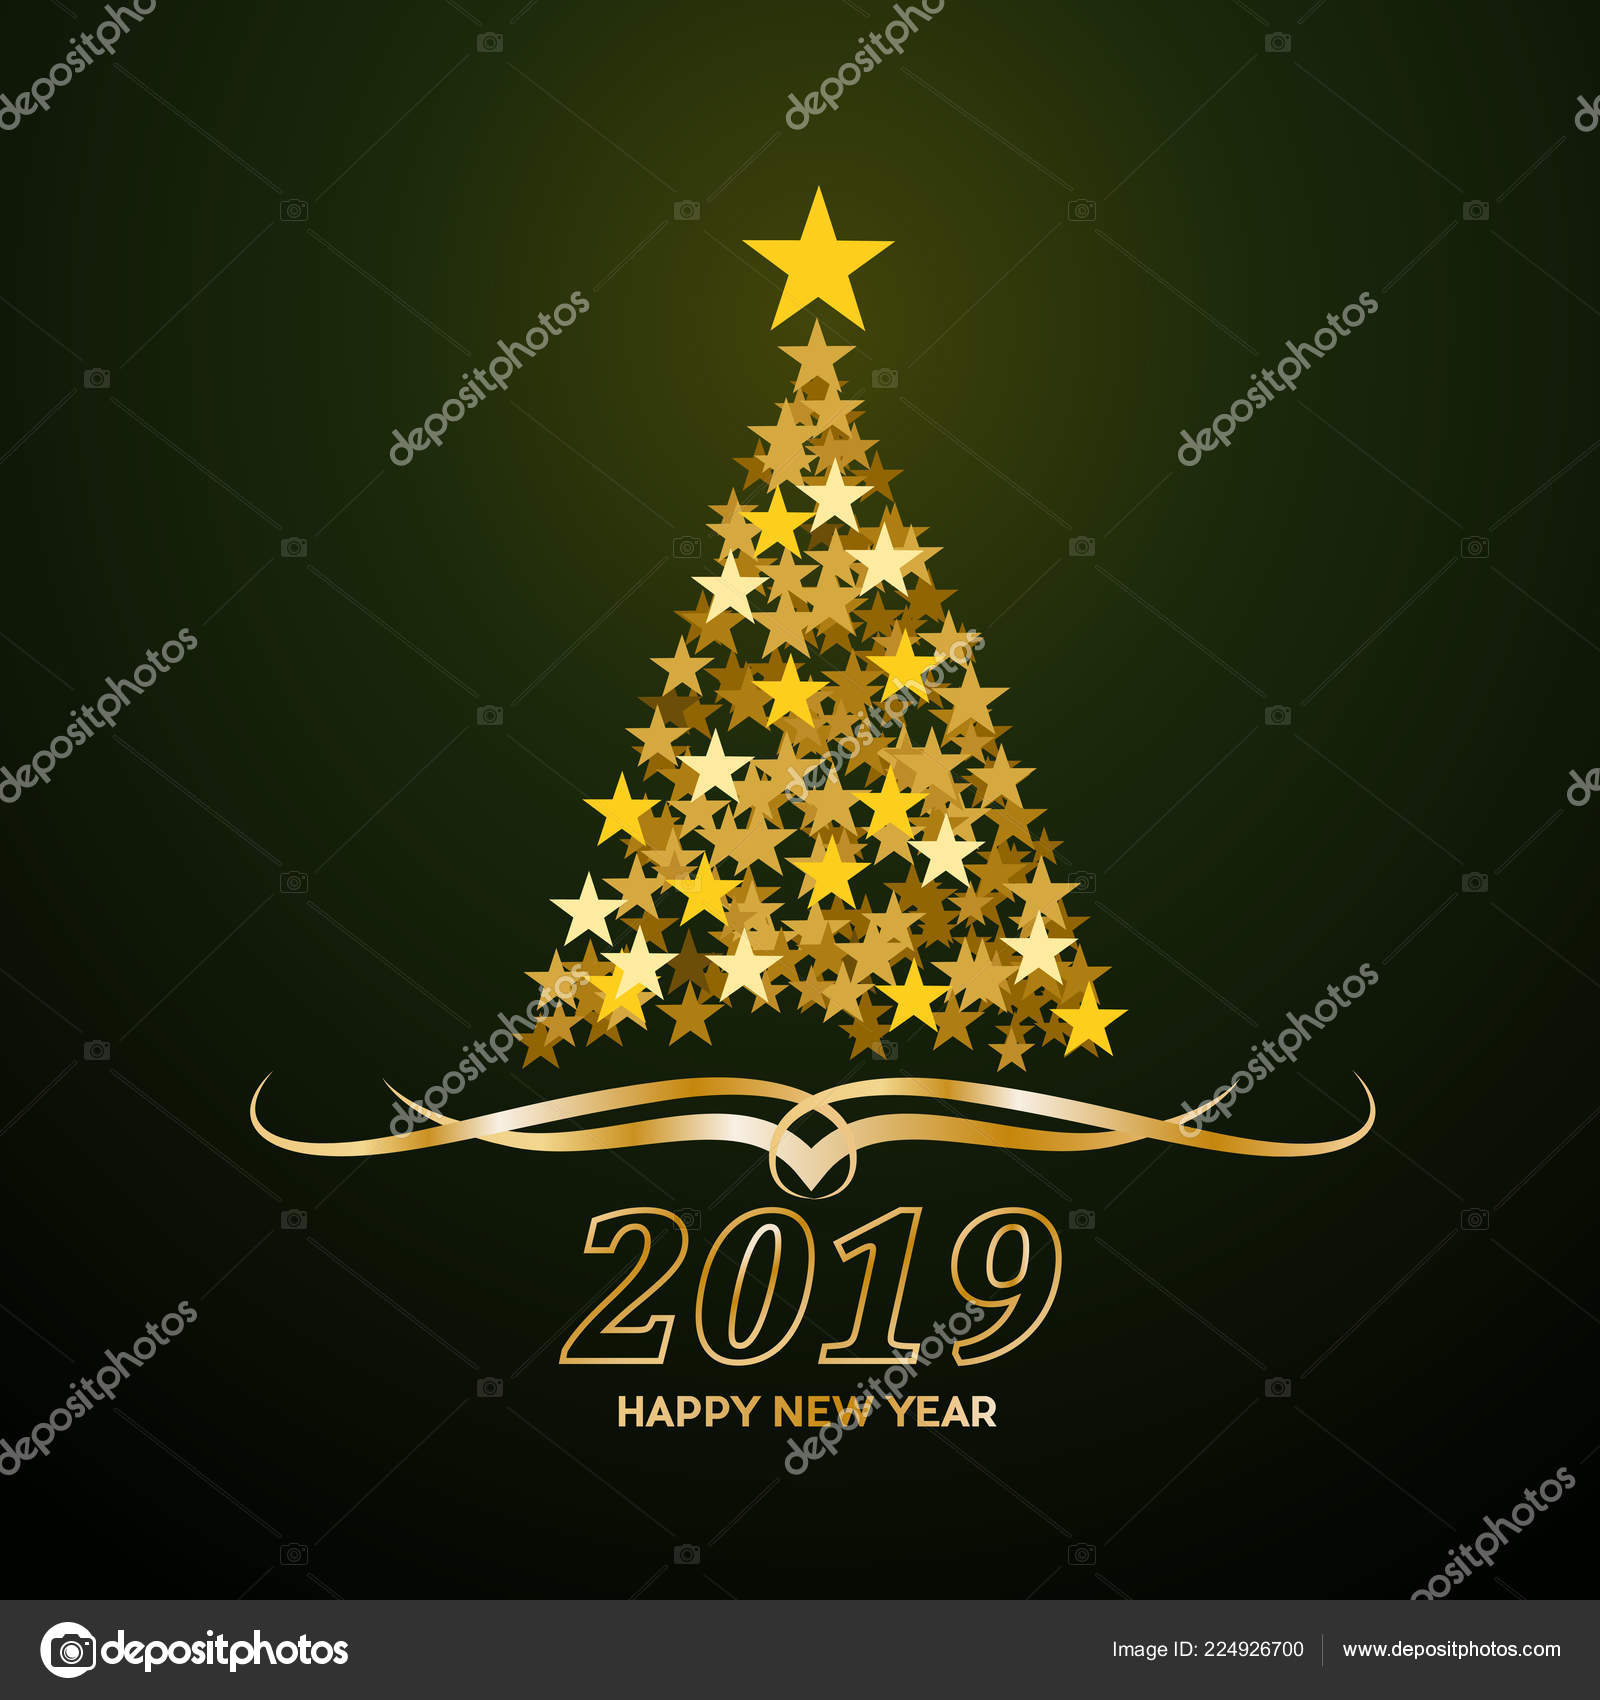 Vector Abstract Cover Golden Christmas Tree Text 2019 Happy New